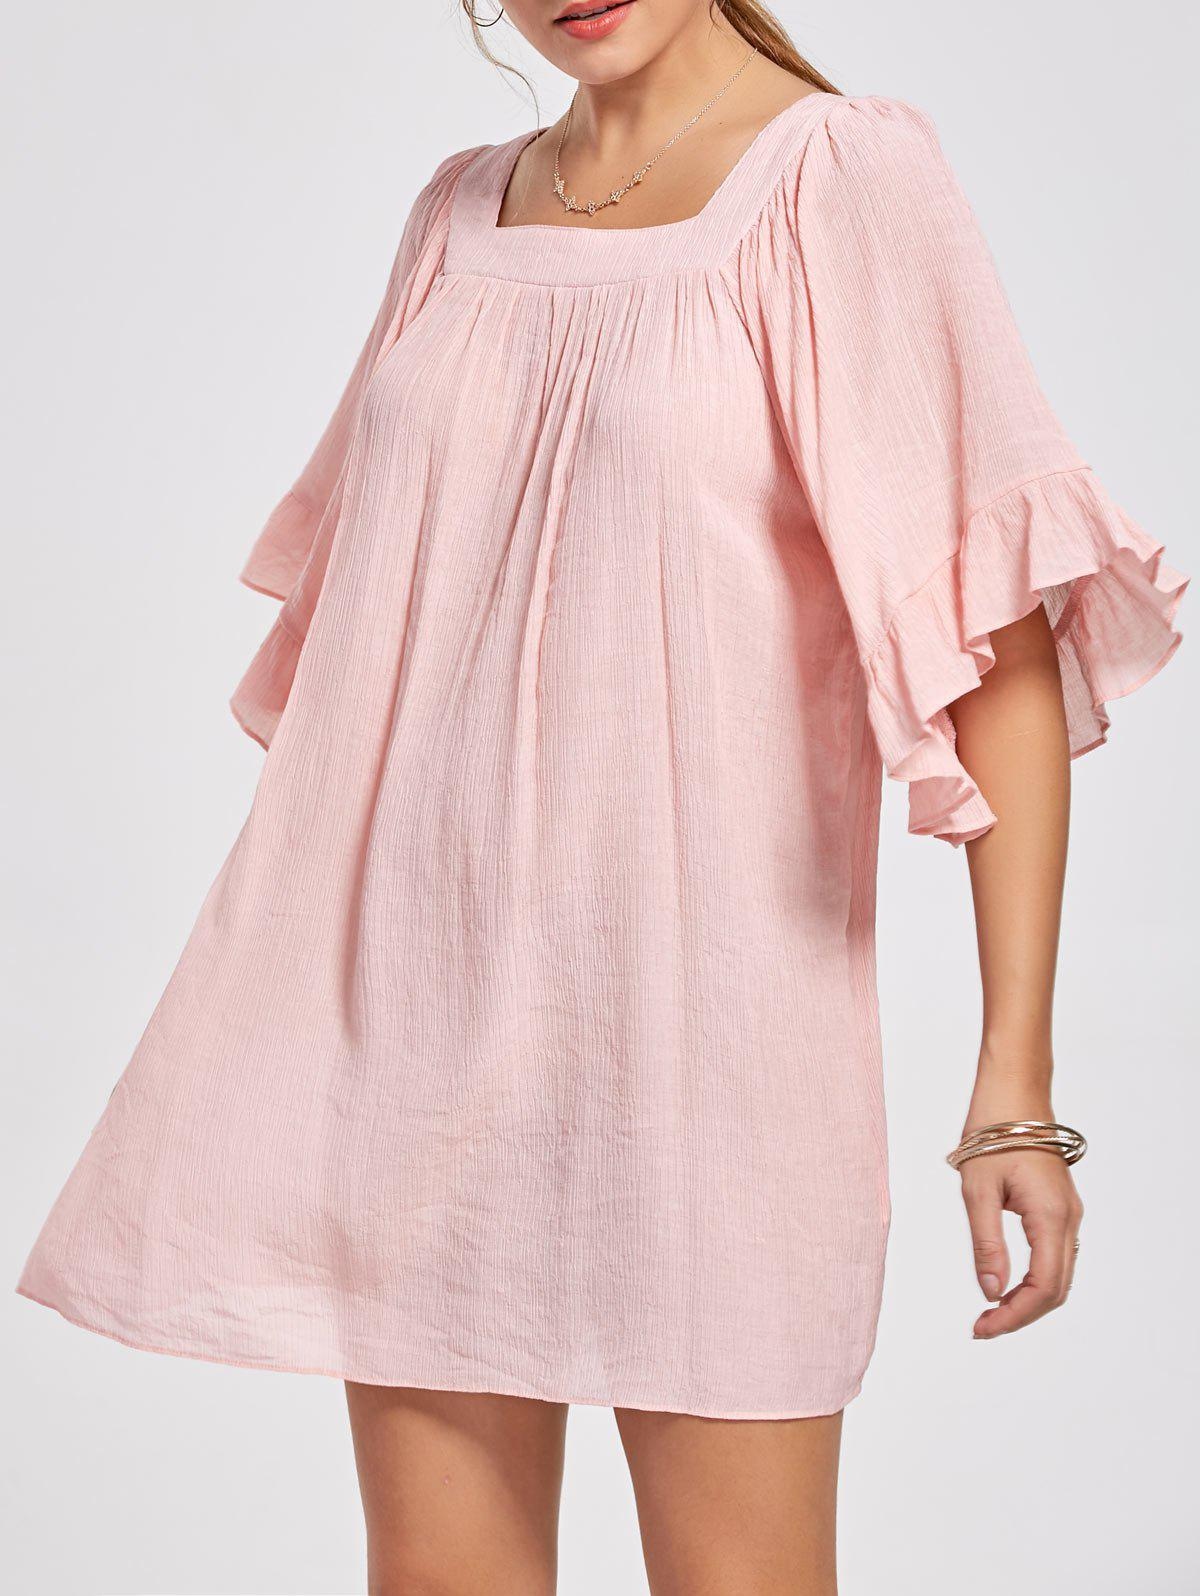 Square Collar Bell Sleeve Mini Dress - LIGHT PINK S